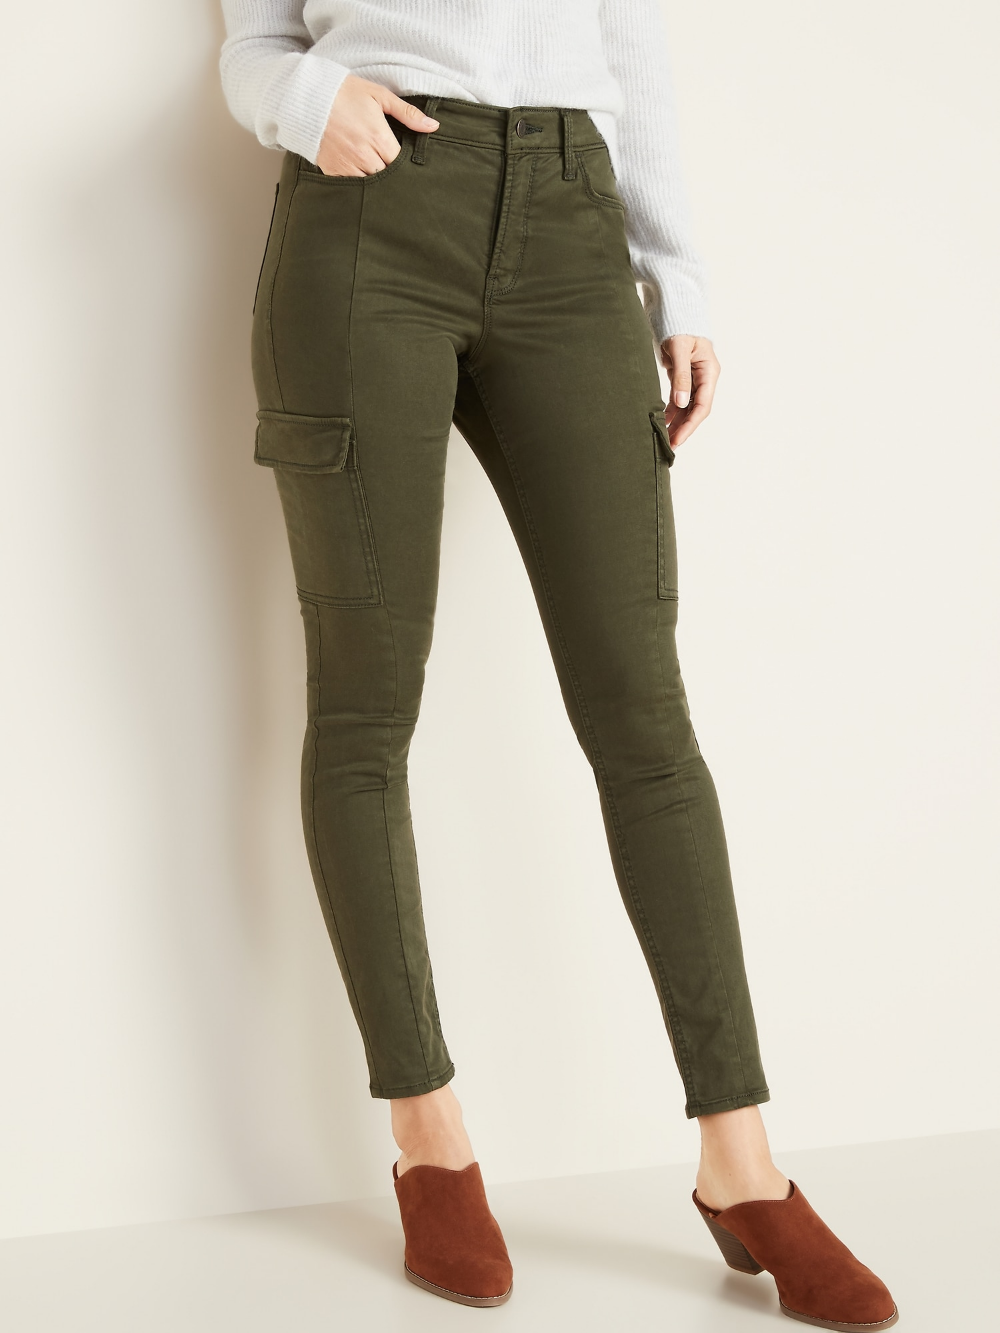 High Waisted Sateen Rockstar Super Skinny Cargo Pants For Women Old Navy Cargo Pants Women Skinny Cargo Pants Jeans Outfit Women